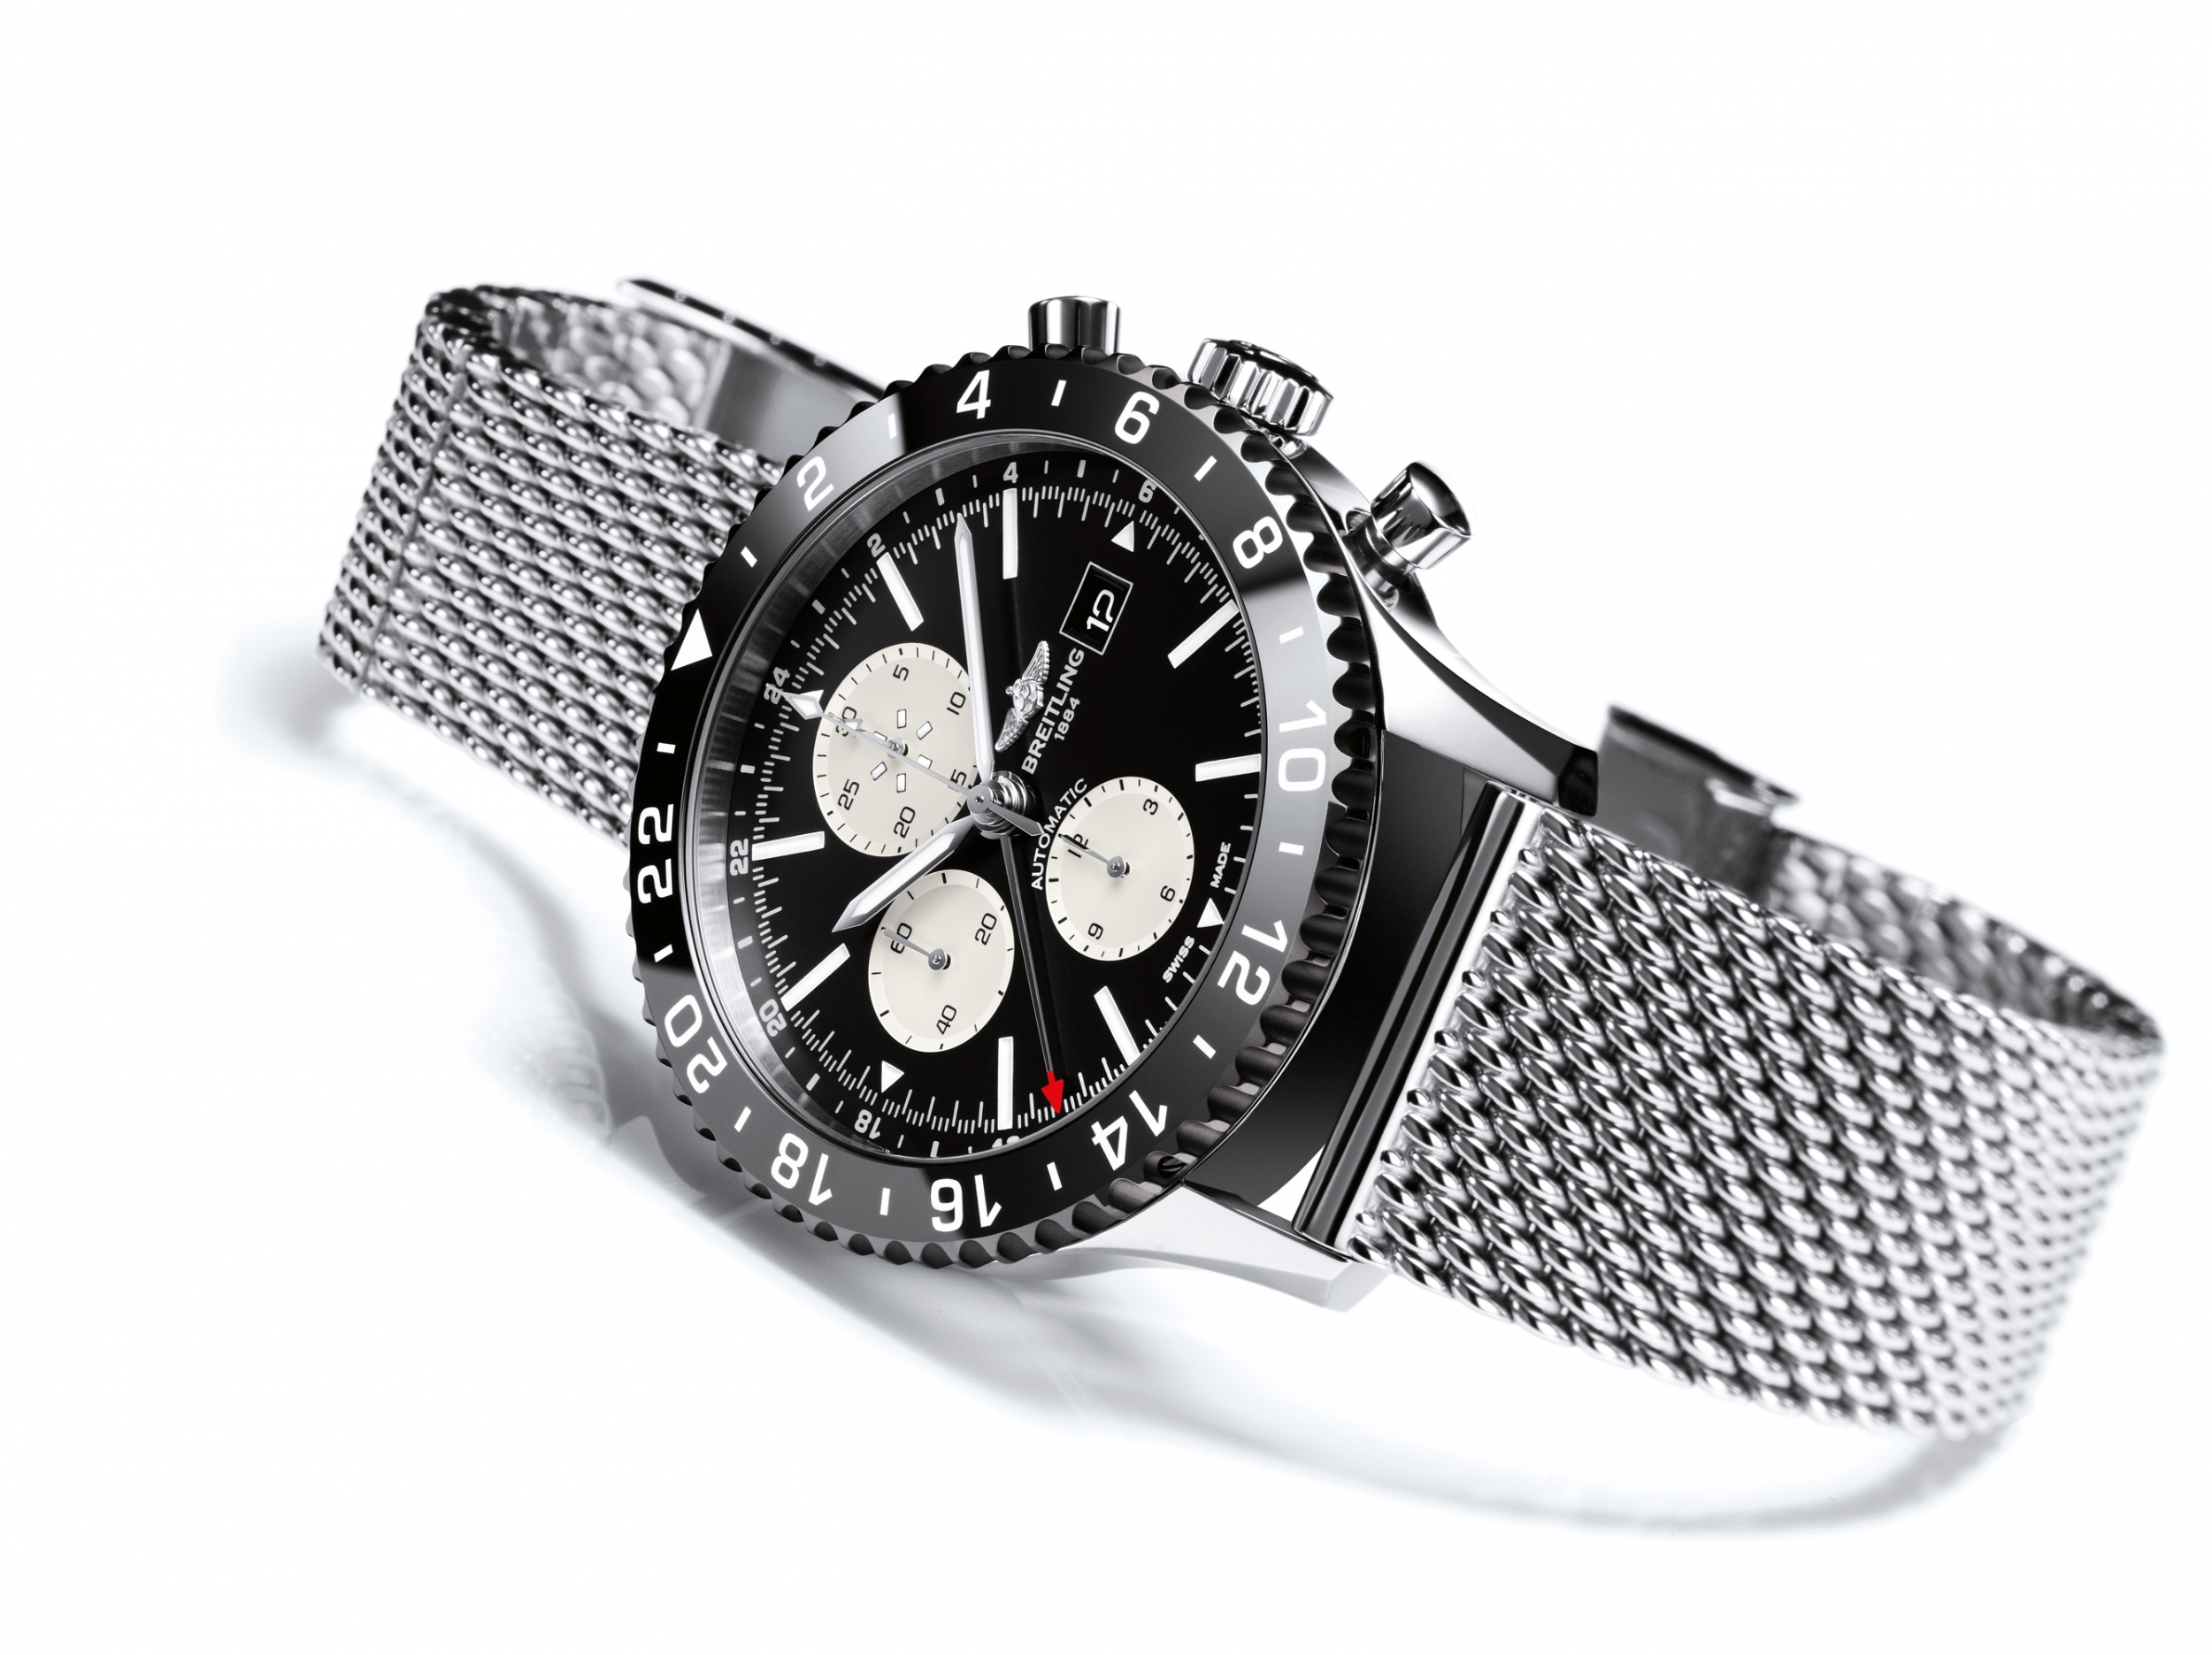 Fake Breitling Chronoliner Watches